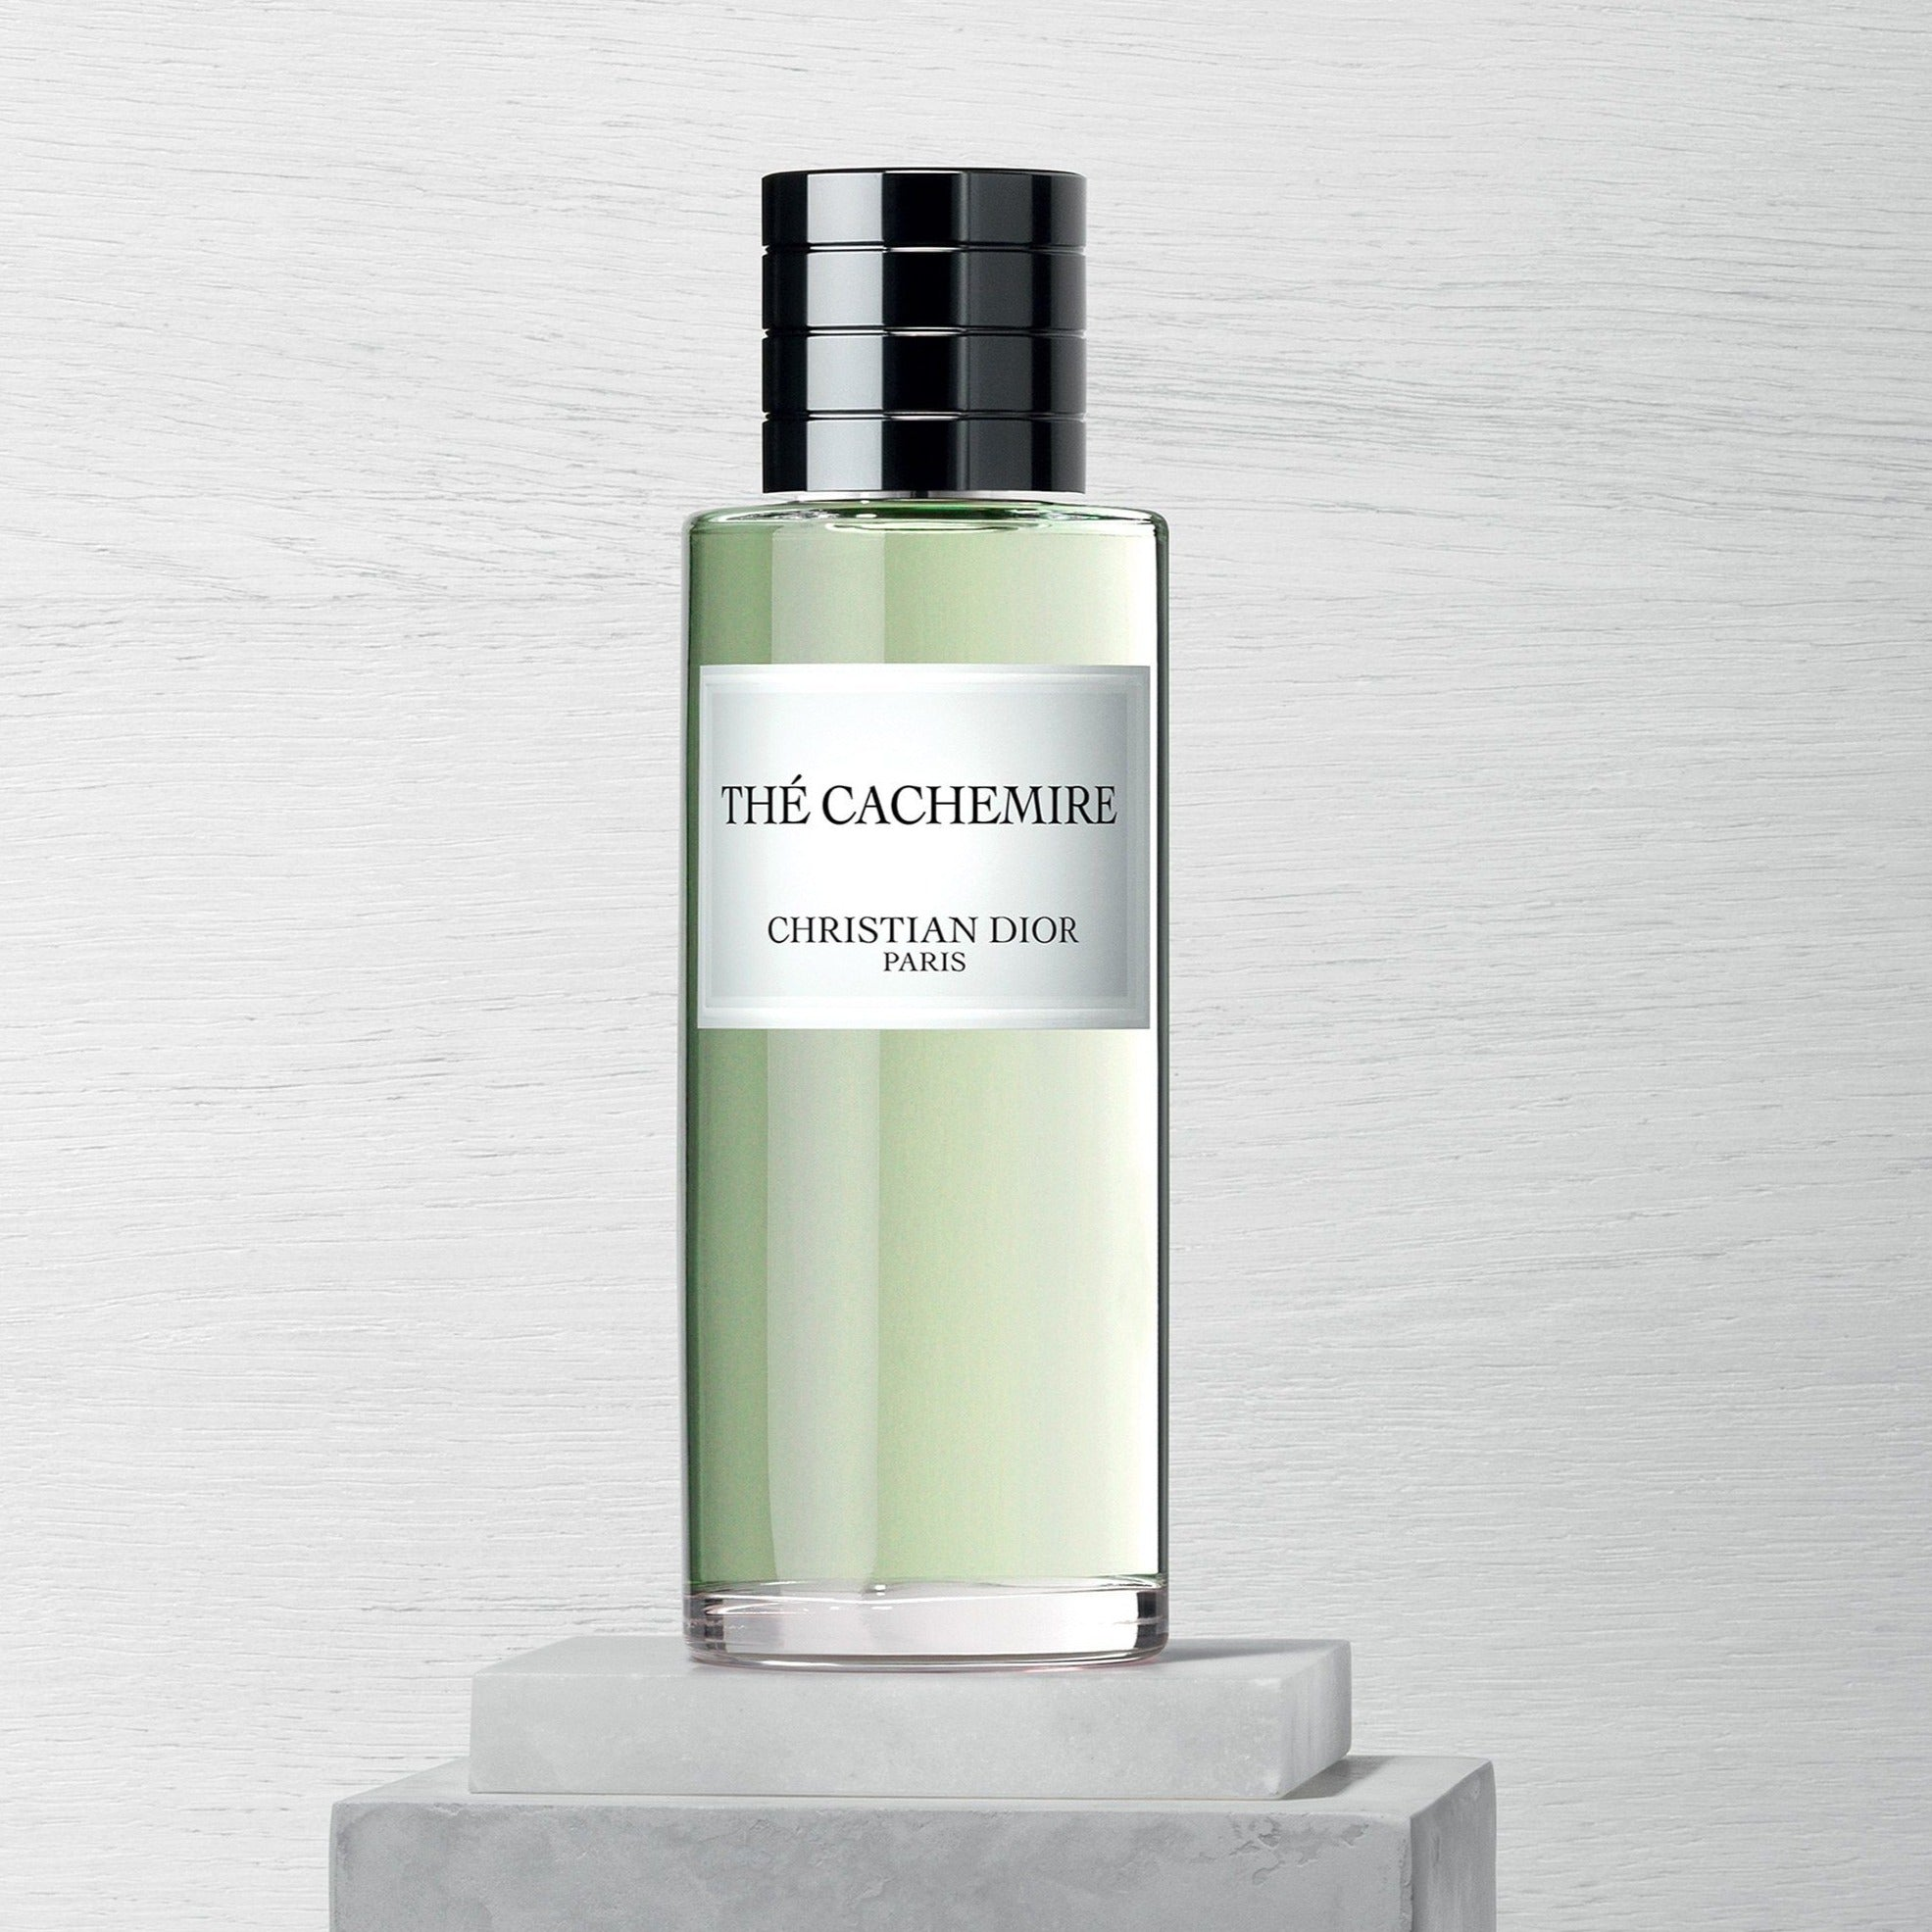 THE CACHEMIRE | Fragrance